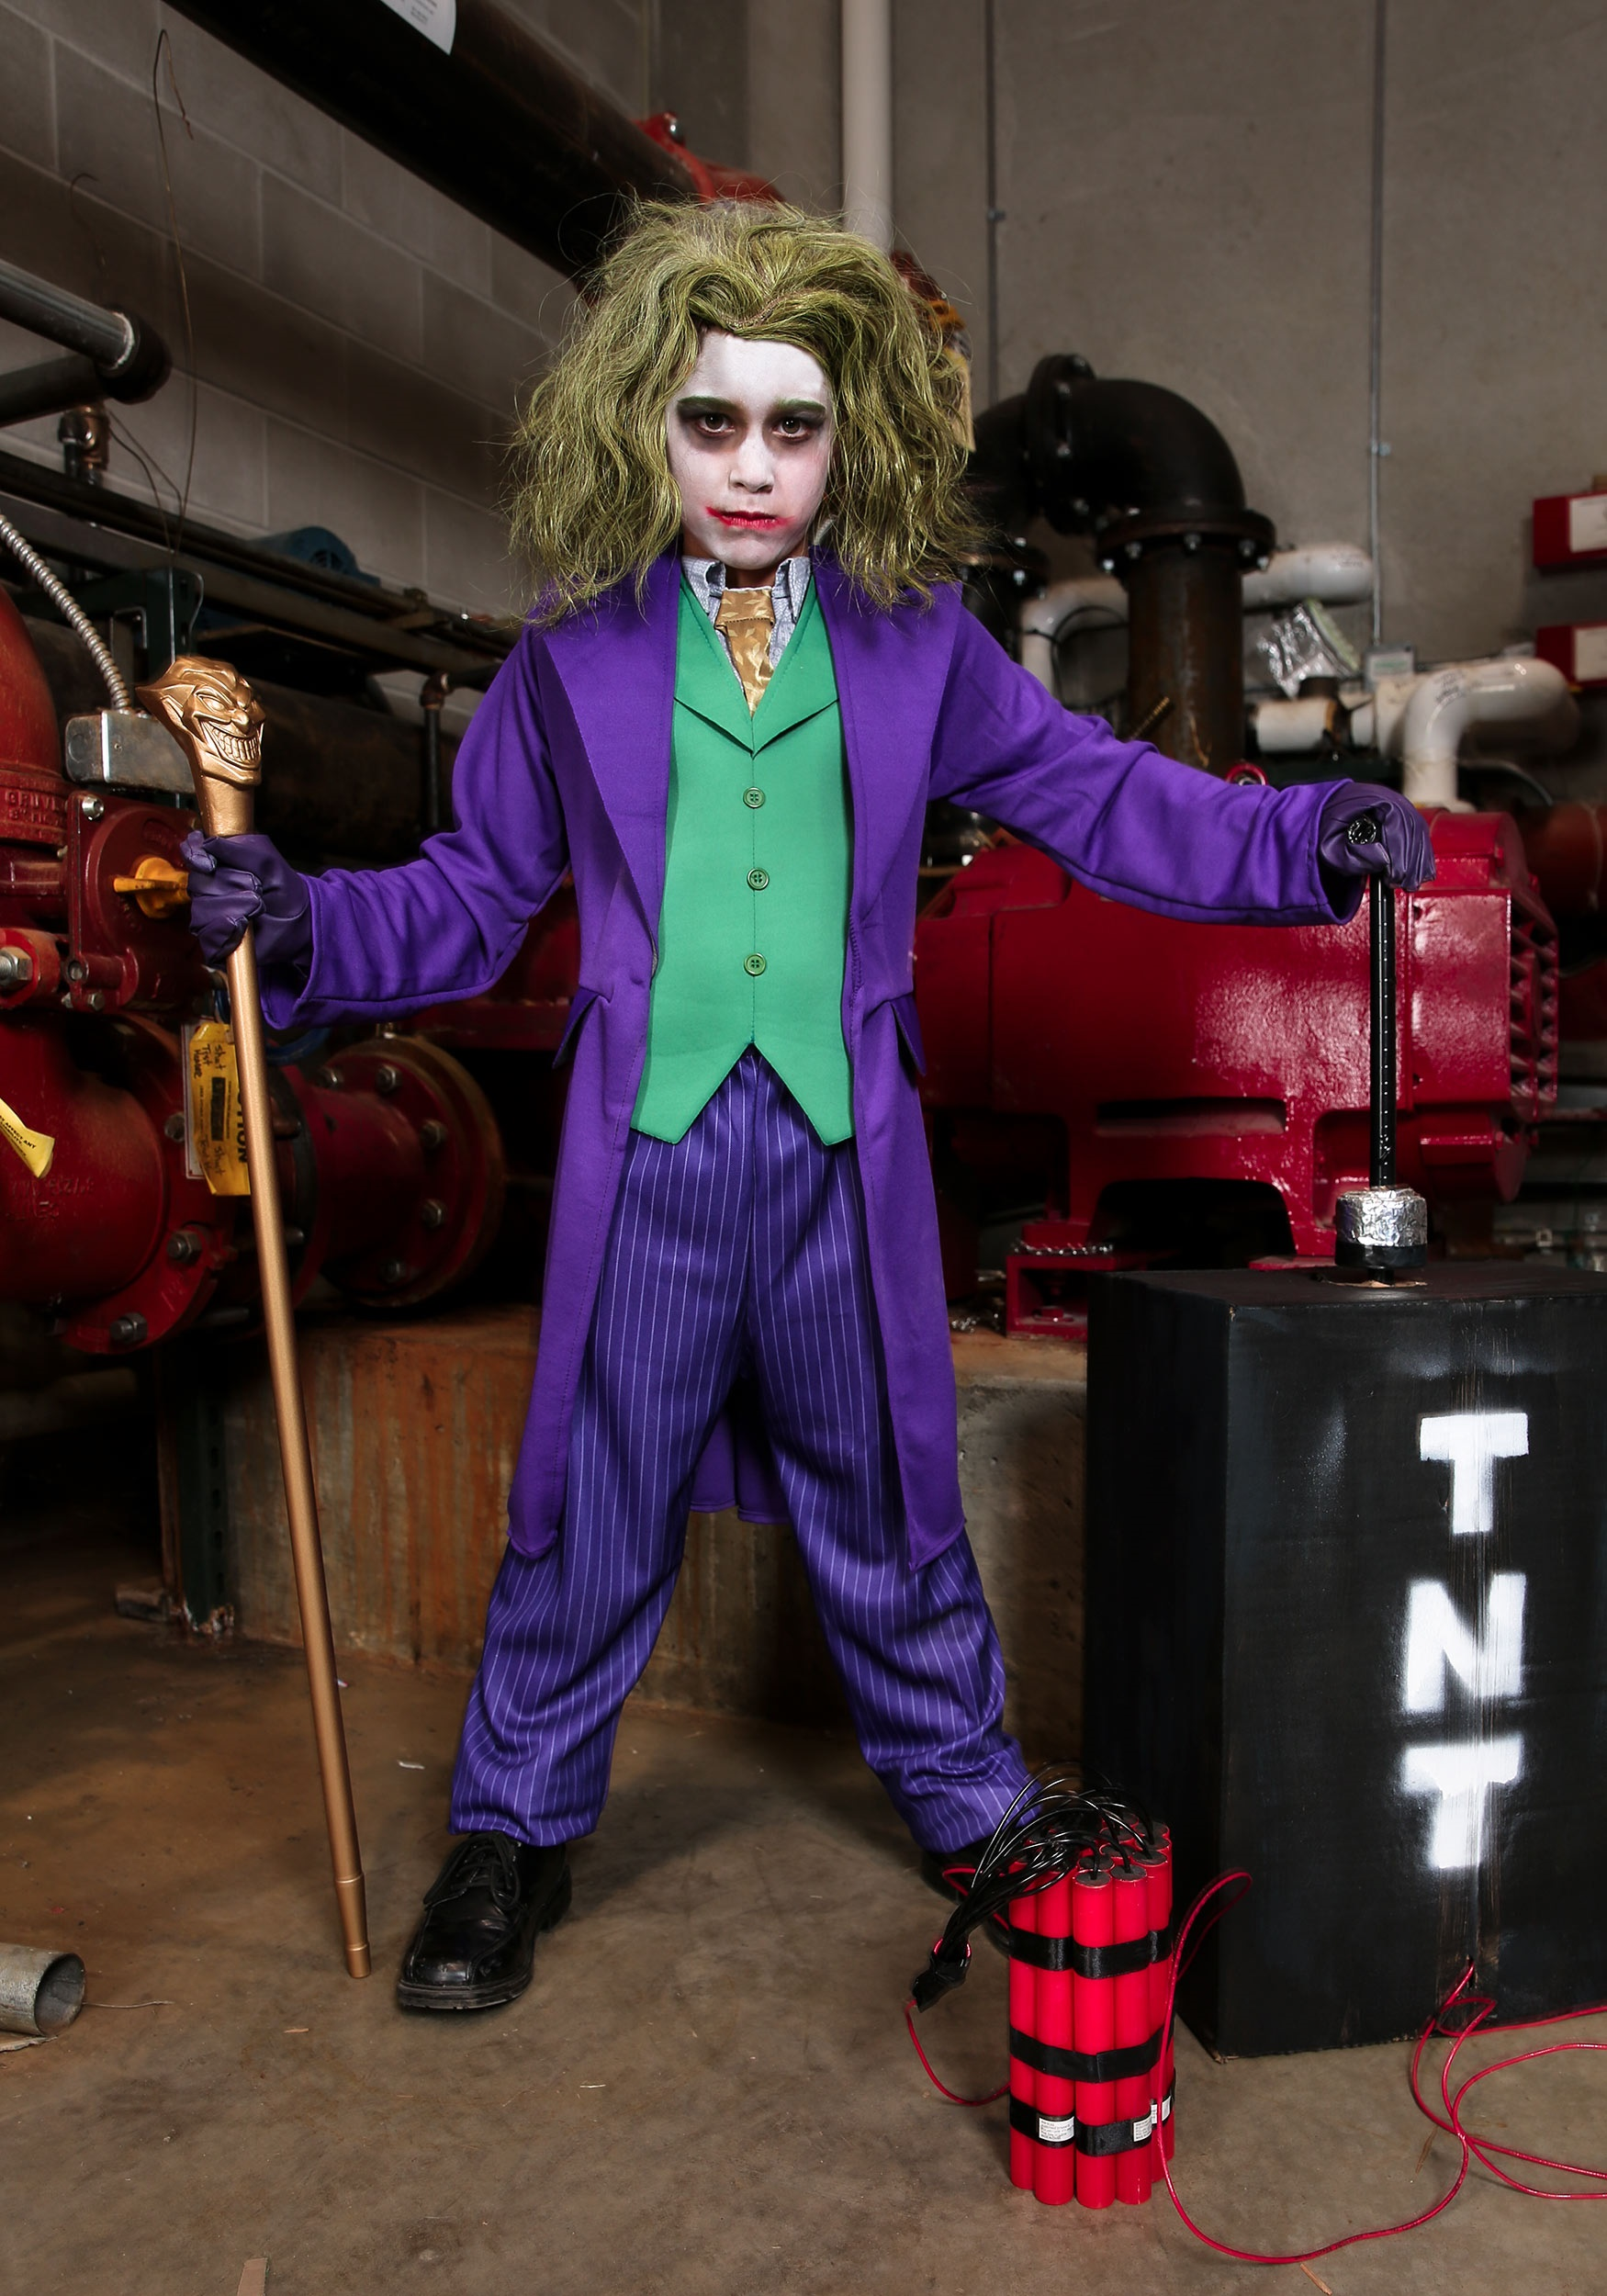 Deluxe Child Joker Costume  sc 1 st  Halloween Costumes : toddler joker costume  - Germanpascual.Com